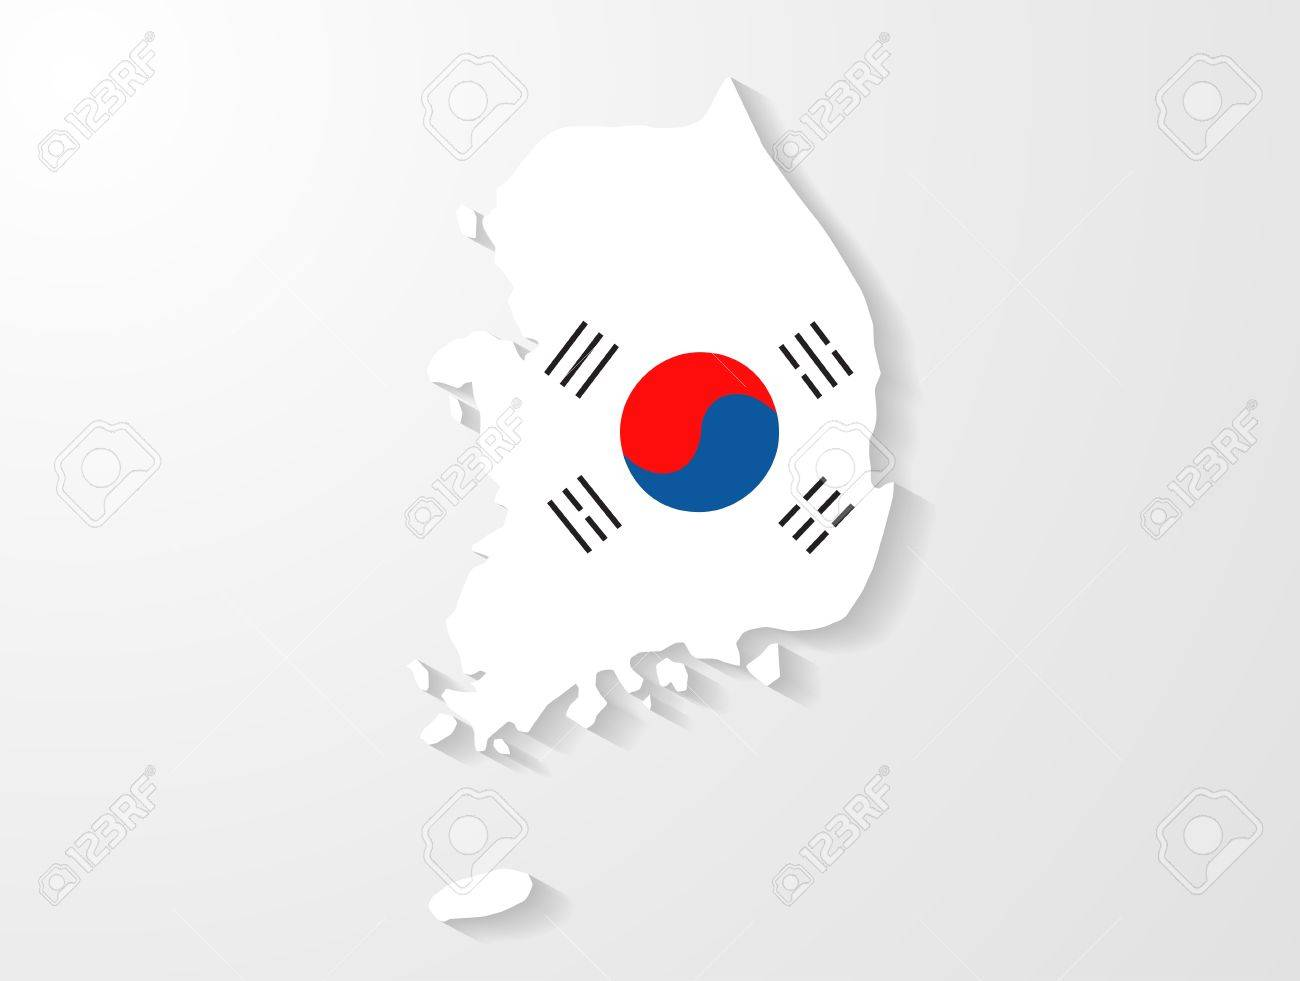 South Korea map with shadow effect - 20381791